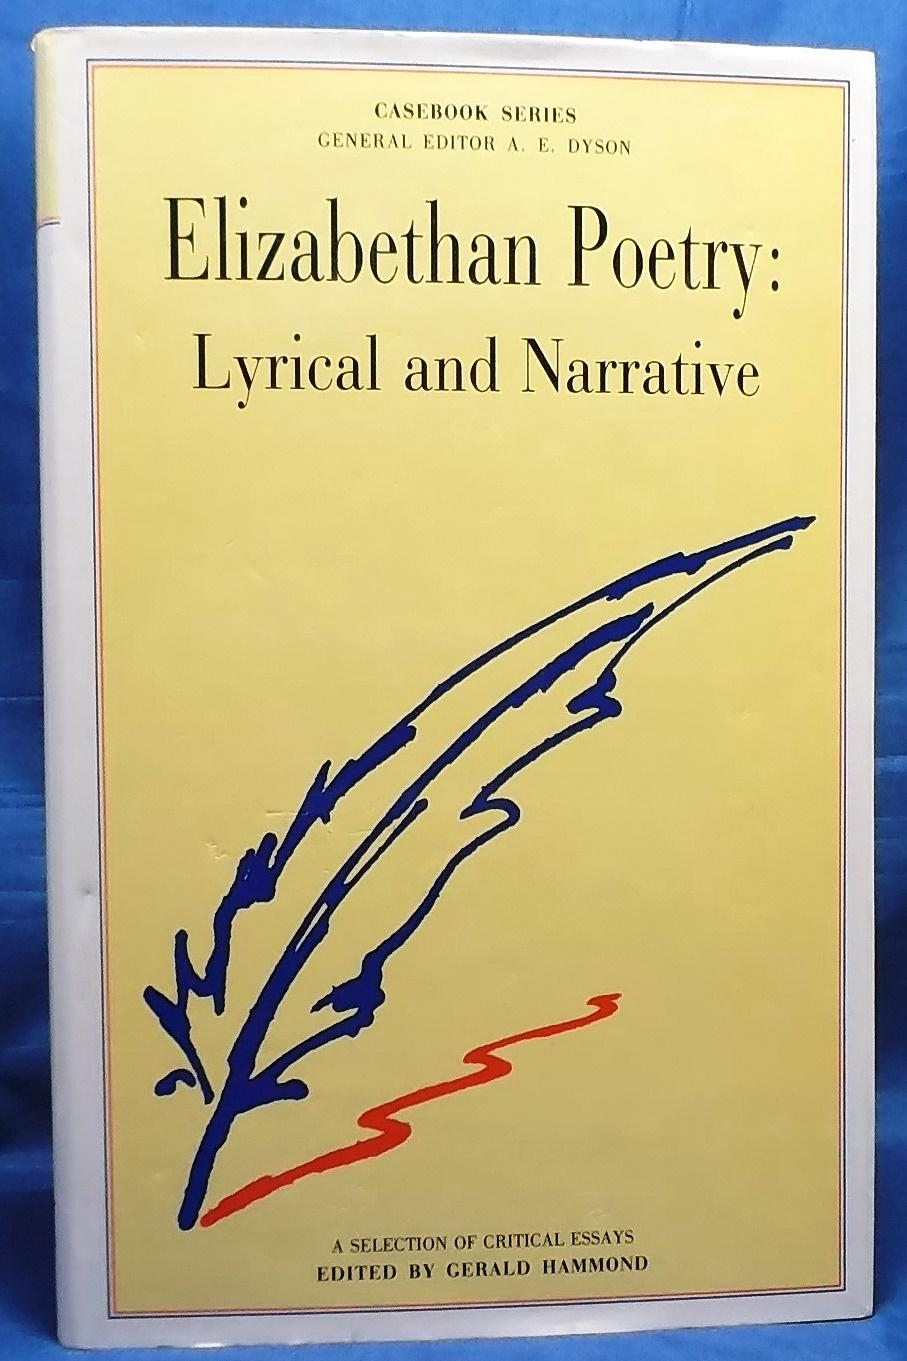 elizabethan poetry essay elizabethan poetry essay get help from elizabethan poetry lyrical and narrative a selection of elizabethan poetry lyrical and narrative a selection of